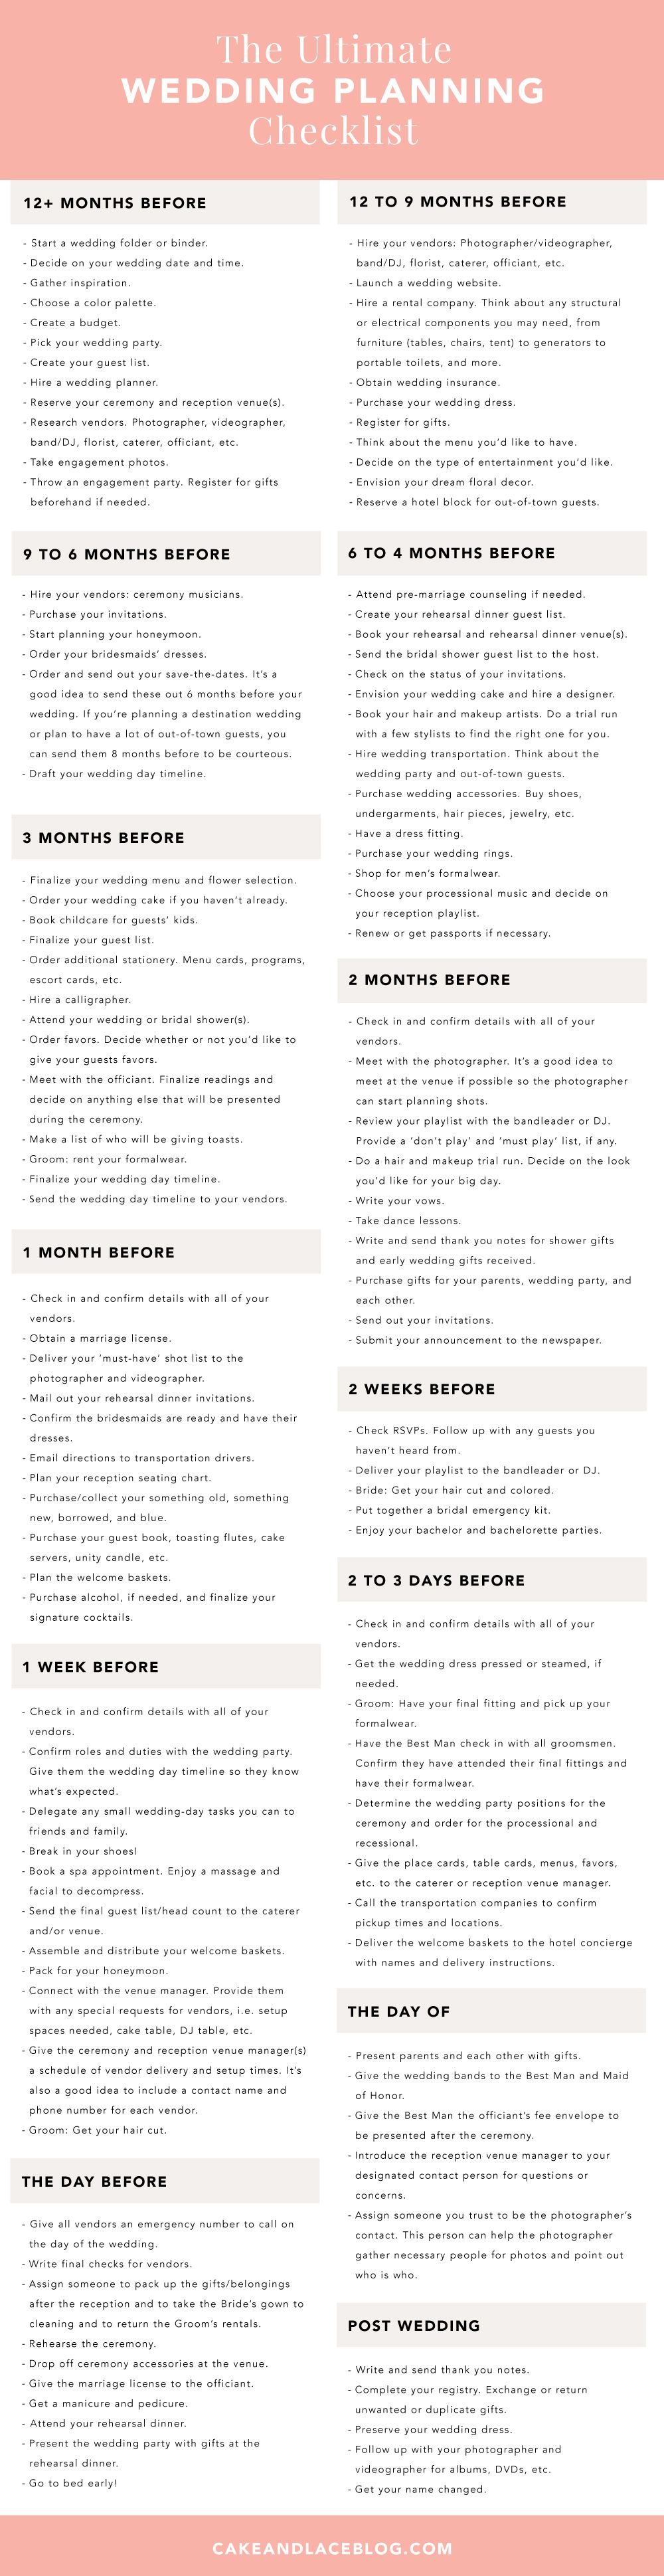 The Ultimate Wedding Planning Checklist From Cake And Lace Plan Your Weddi Wedding Planning List Wedding Planning Schedule Ultimate Wedding Planning Checklist